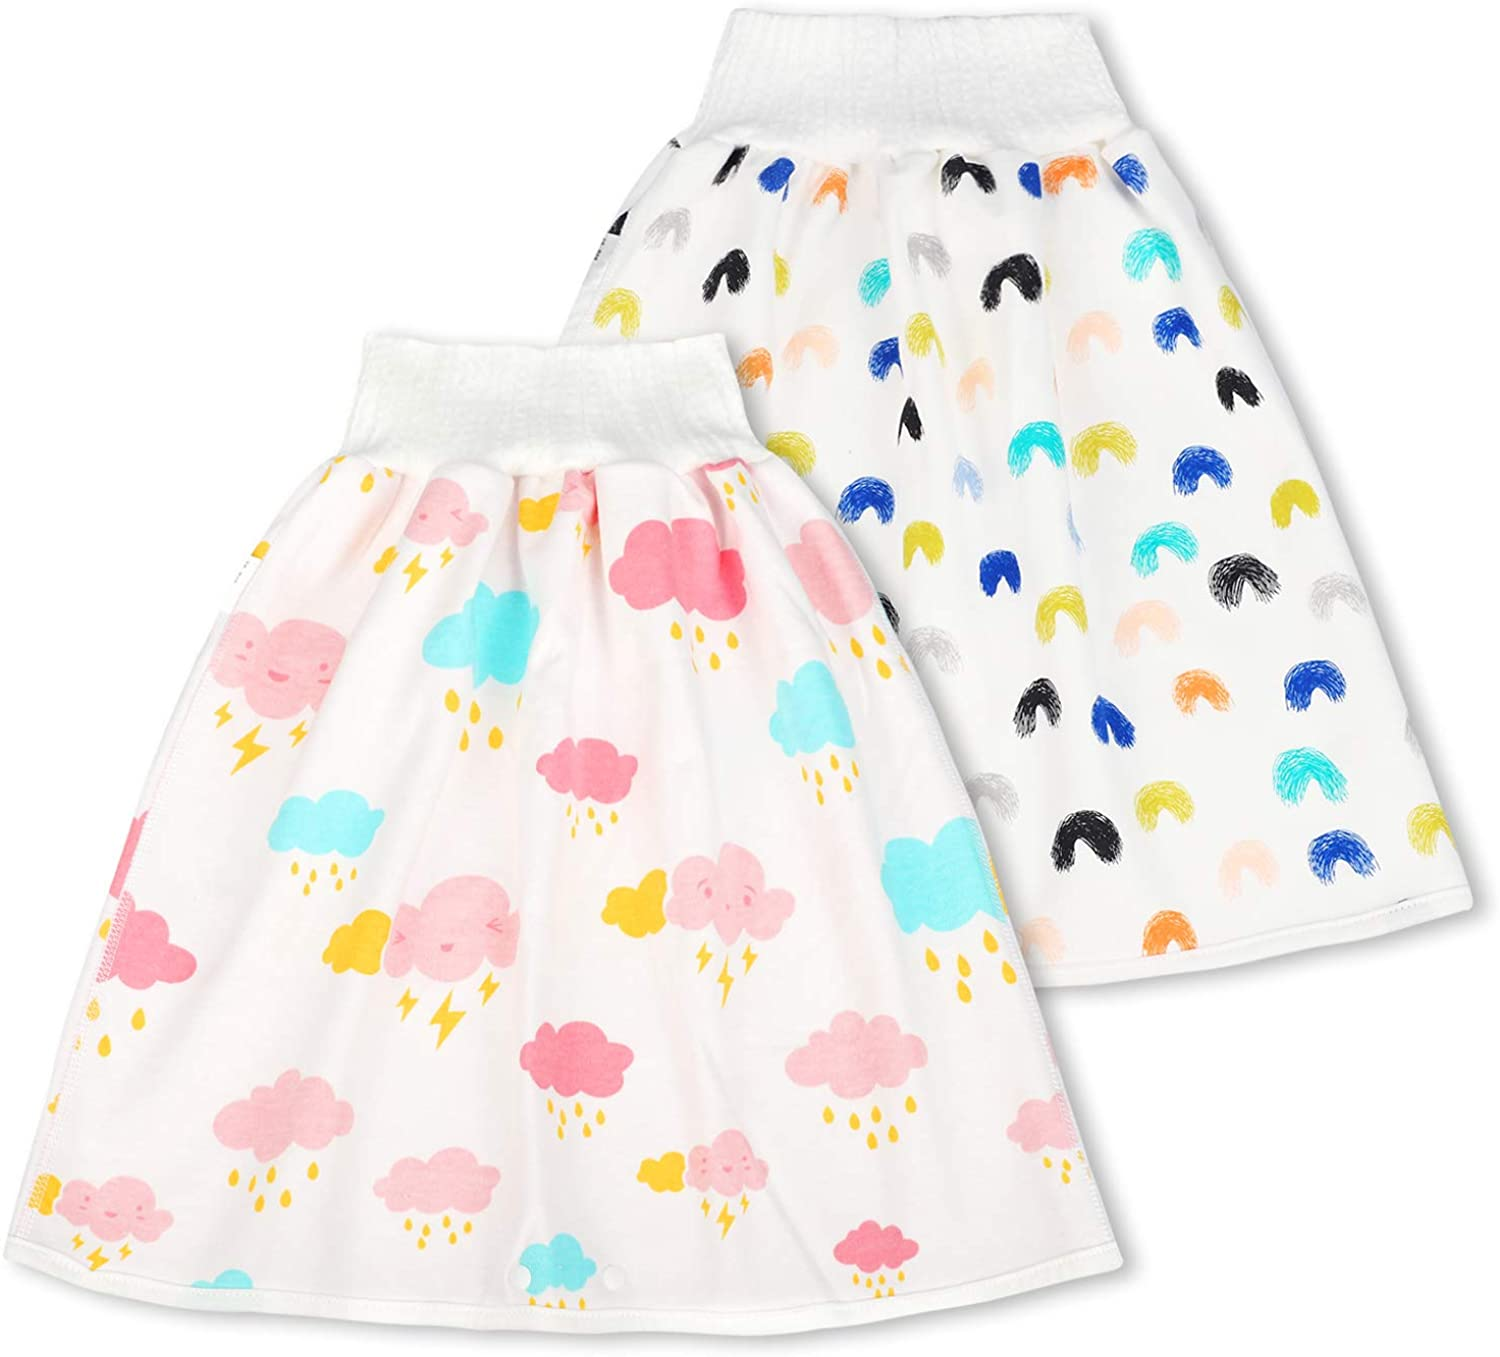 Cotton Training Pants Cloth Diaper Skirts for Baby Boy and Girl Night Time 2 Packs Sleeping Bed Clothes for Potty Training